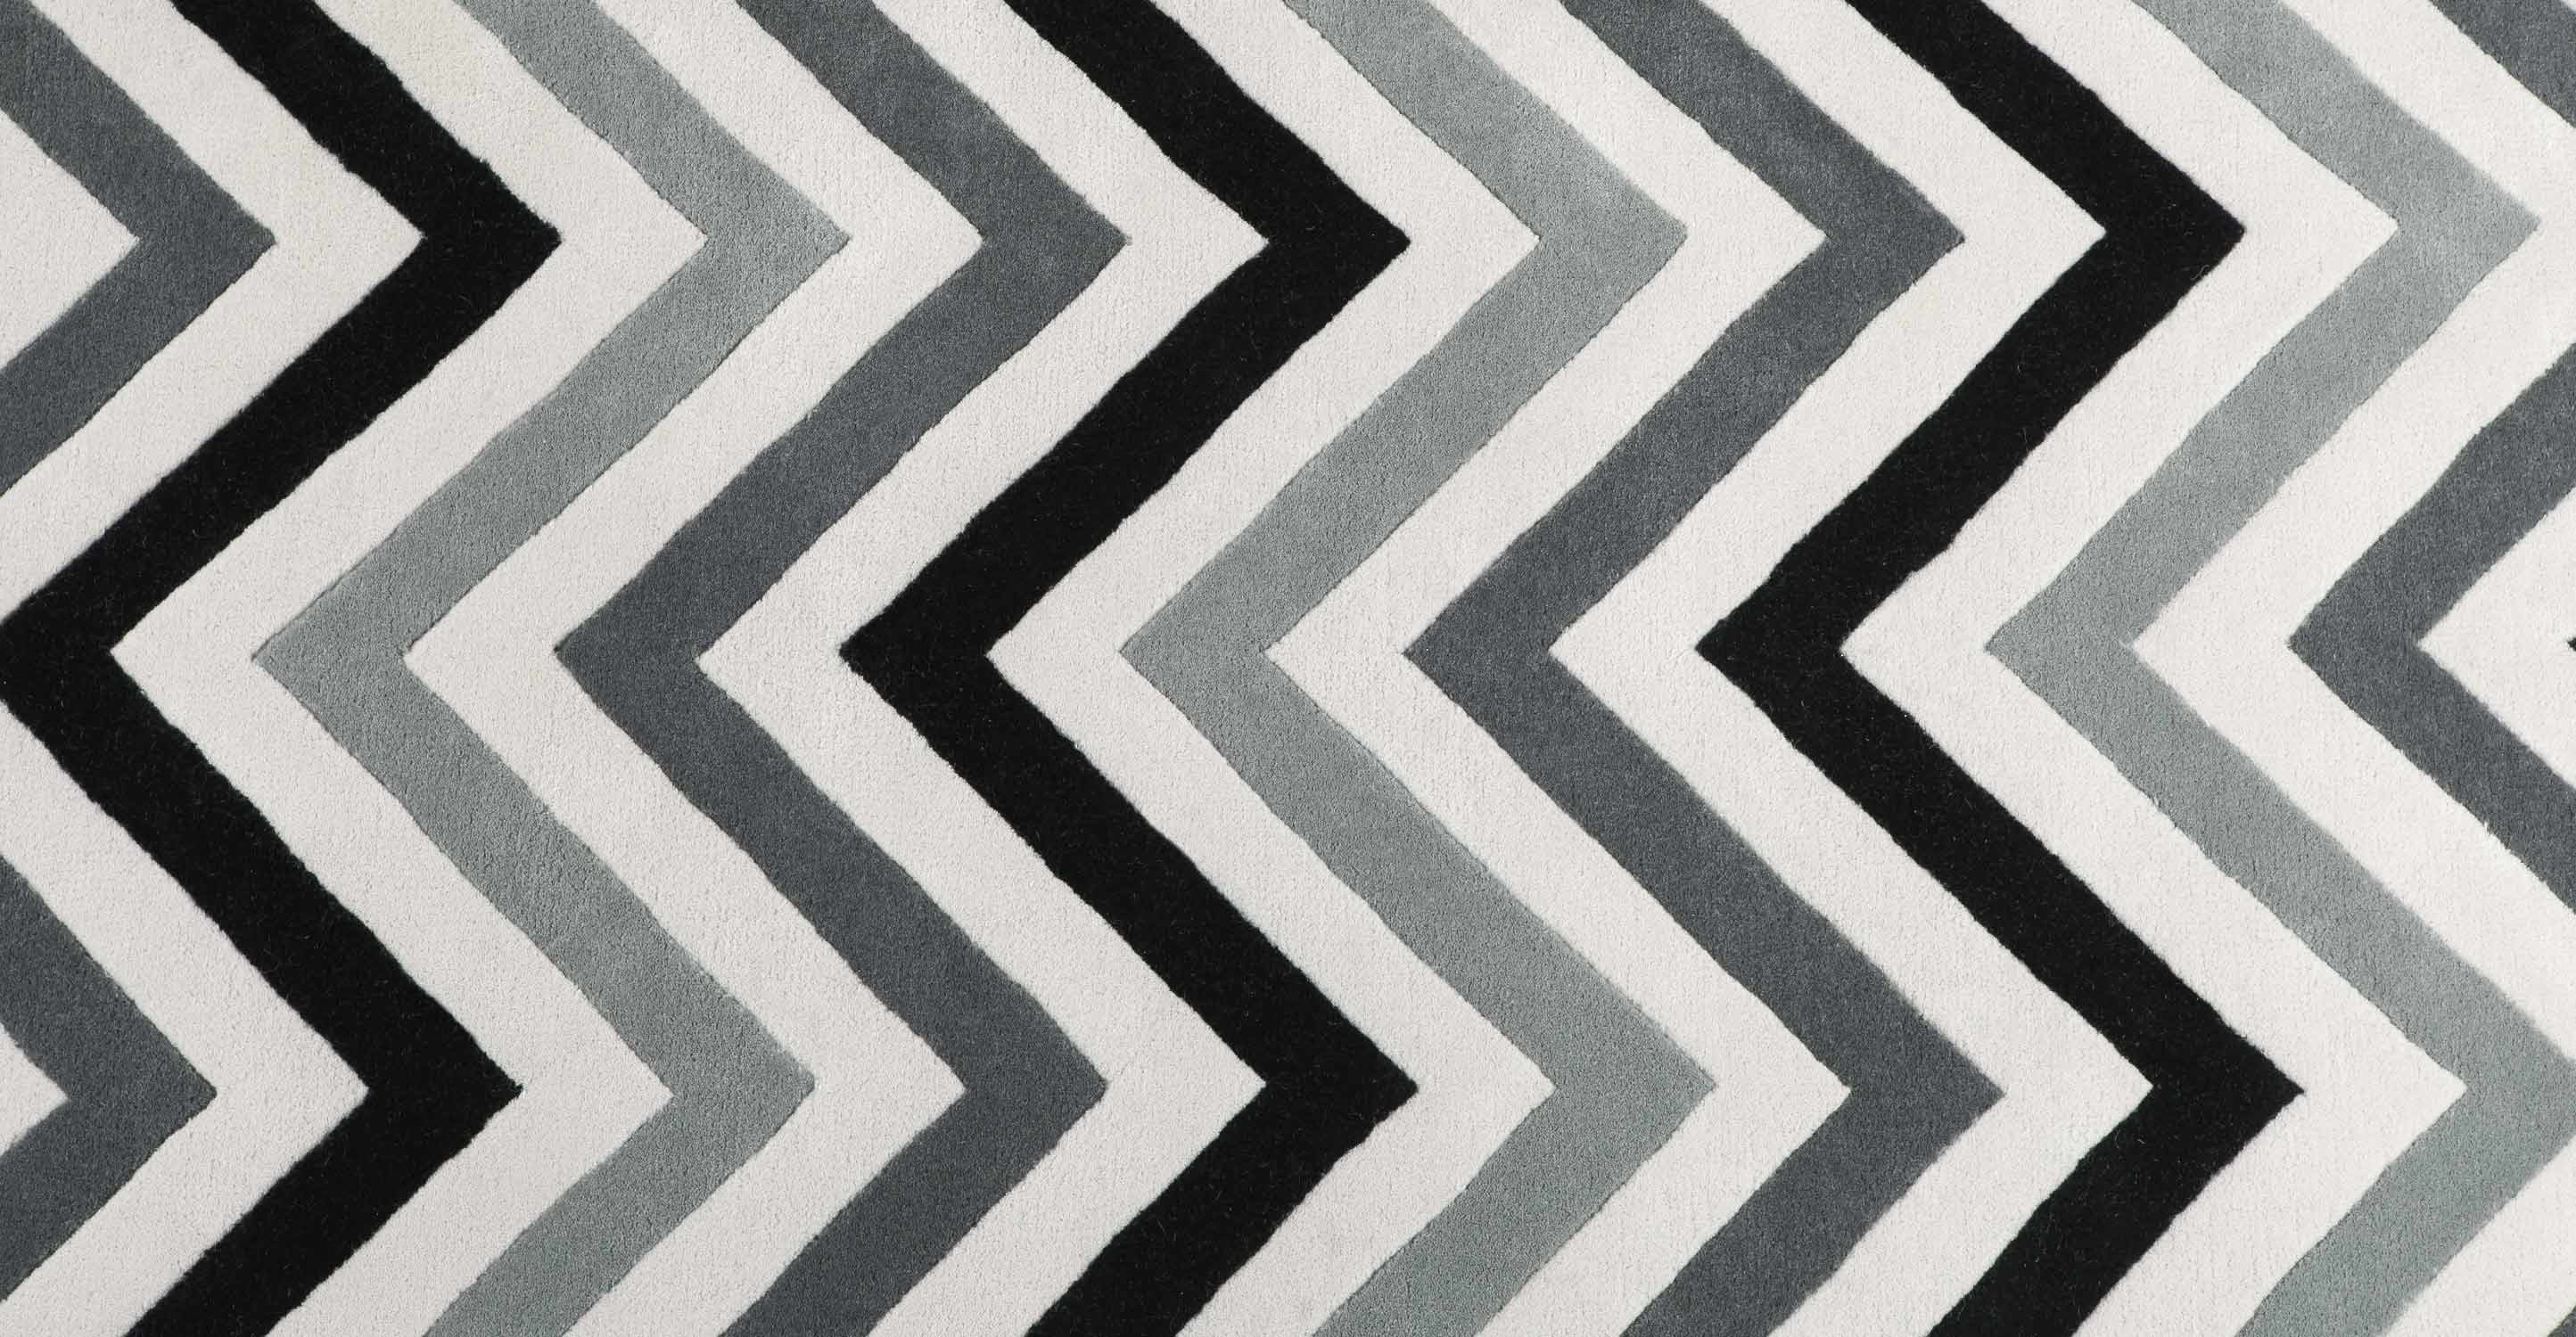 Black and White Chevron Area Rug | Chevron Round Rug | Chevron Rug